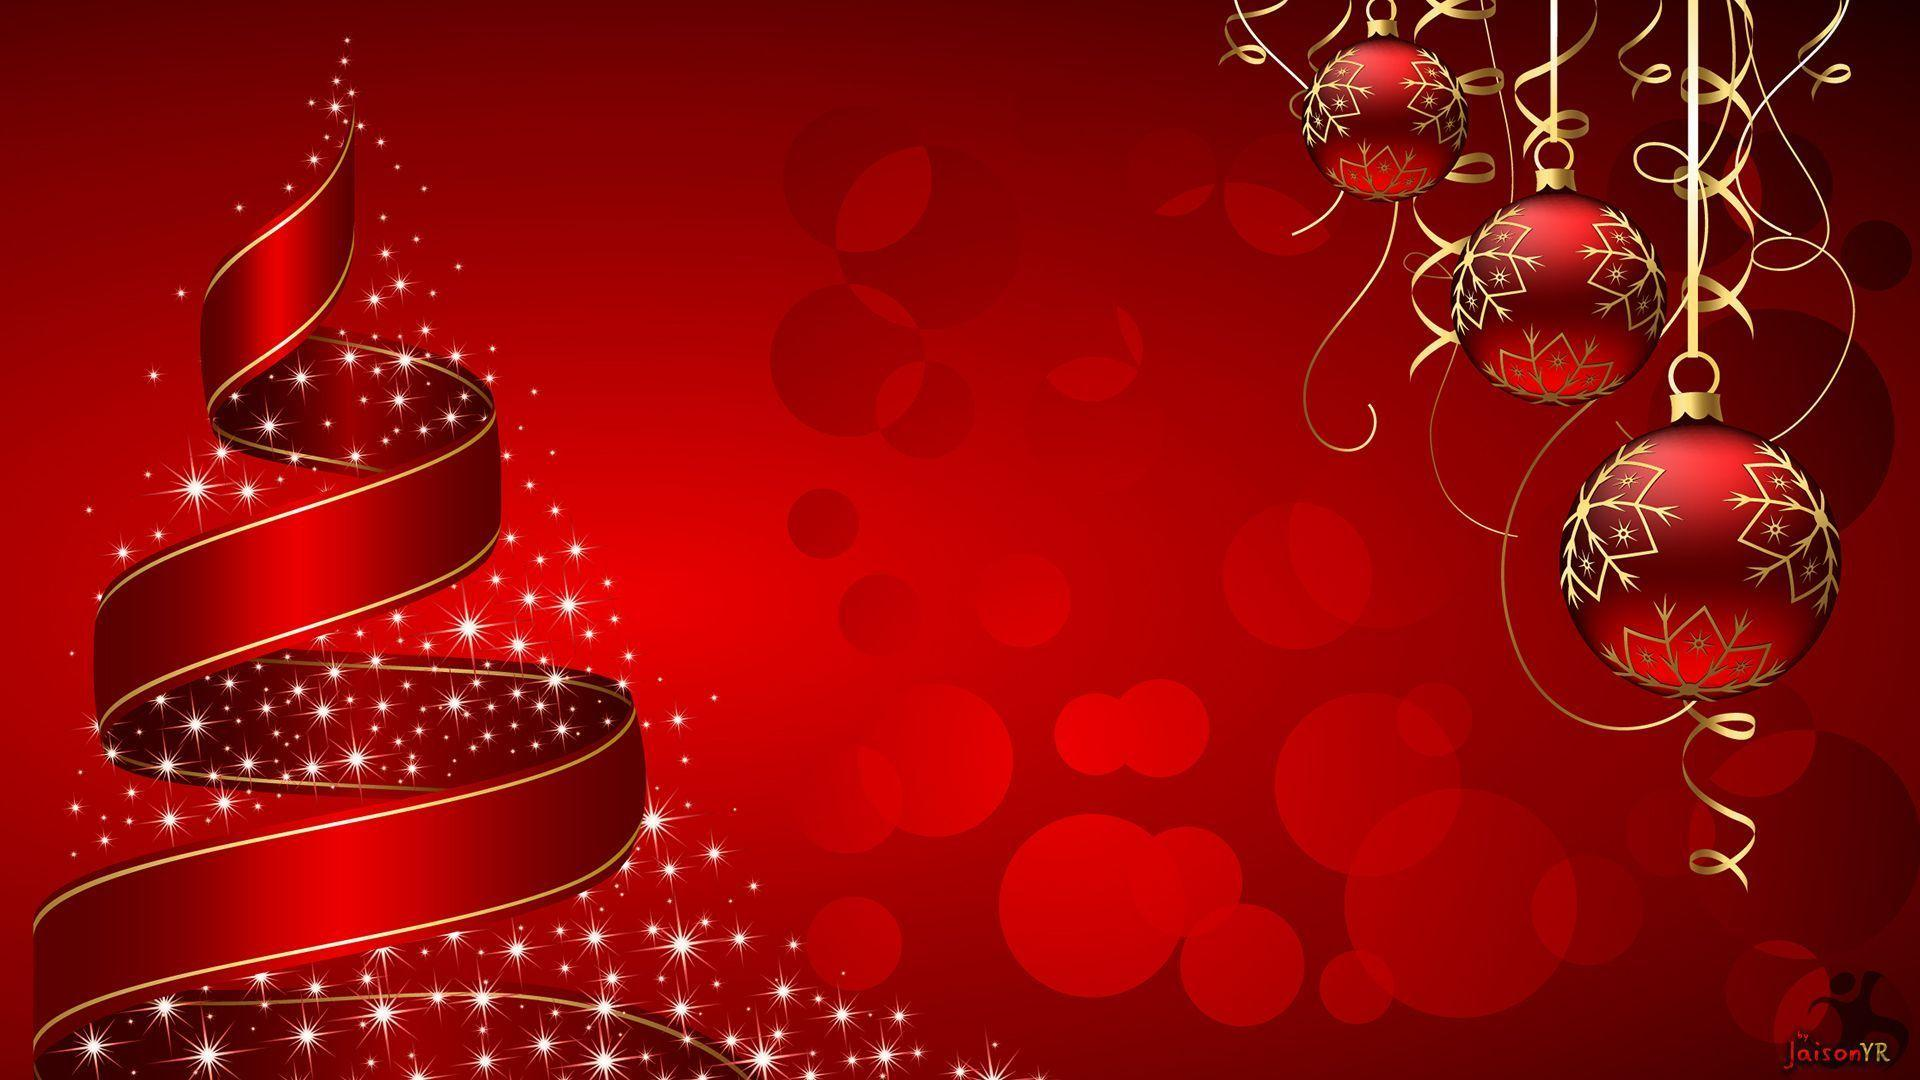 Christmas Backgrounds 9 cool hq 408095 High Definition Wallpapers